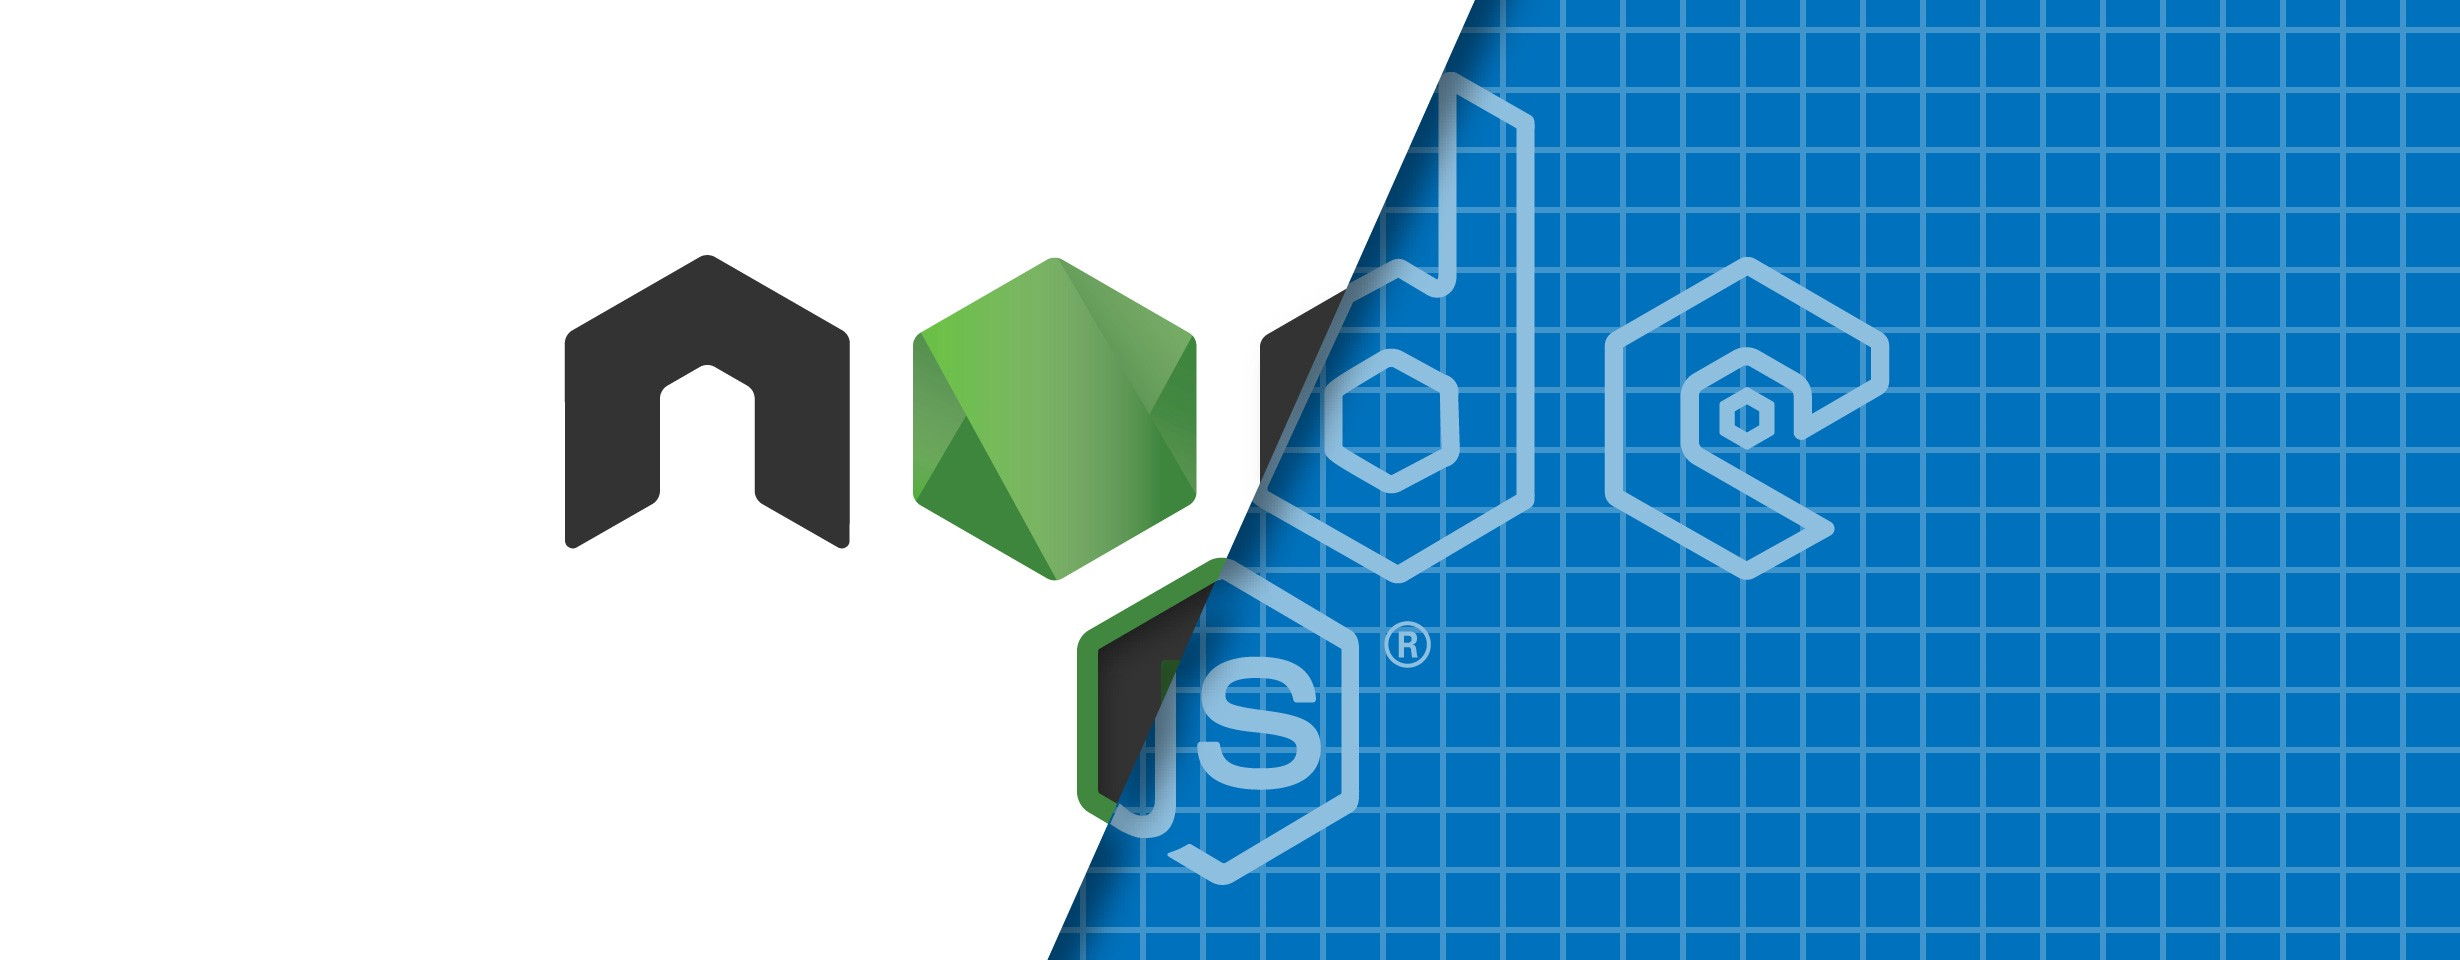 Redesigning Nodejs org: Part 1 - Node js Collection - Medium